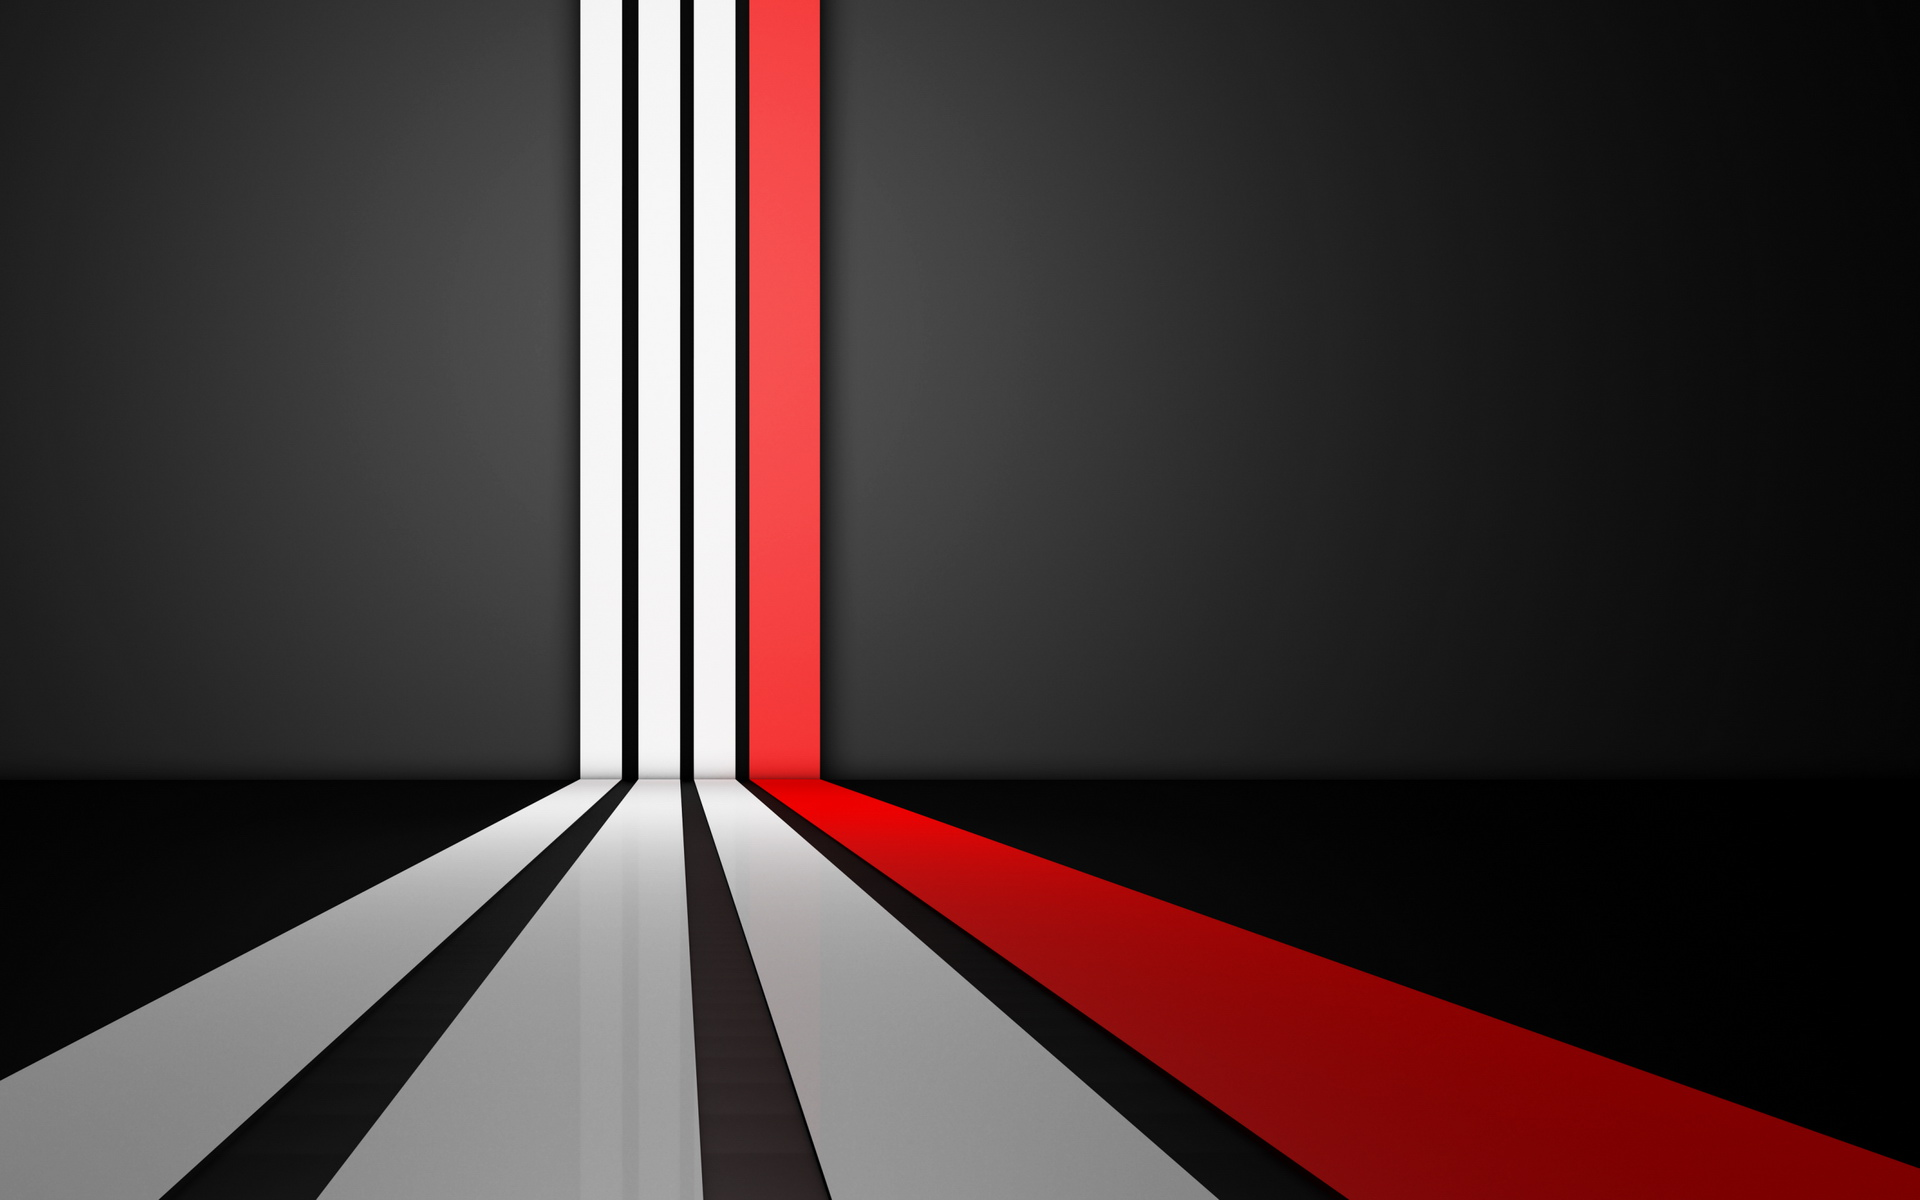 Red White And Black Striped Wallpaper